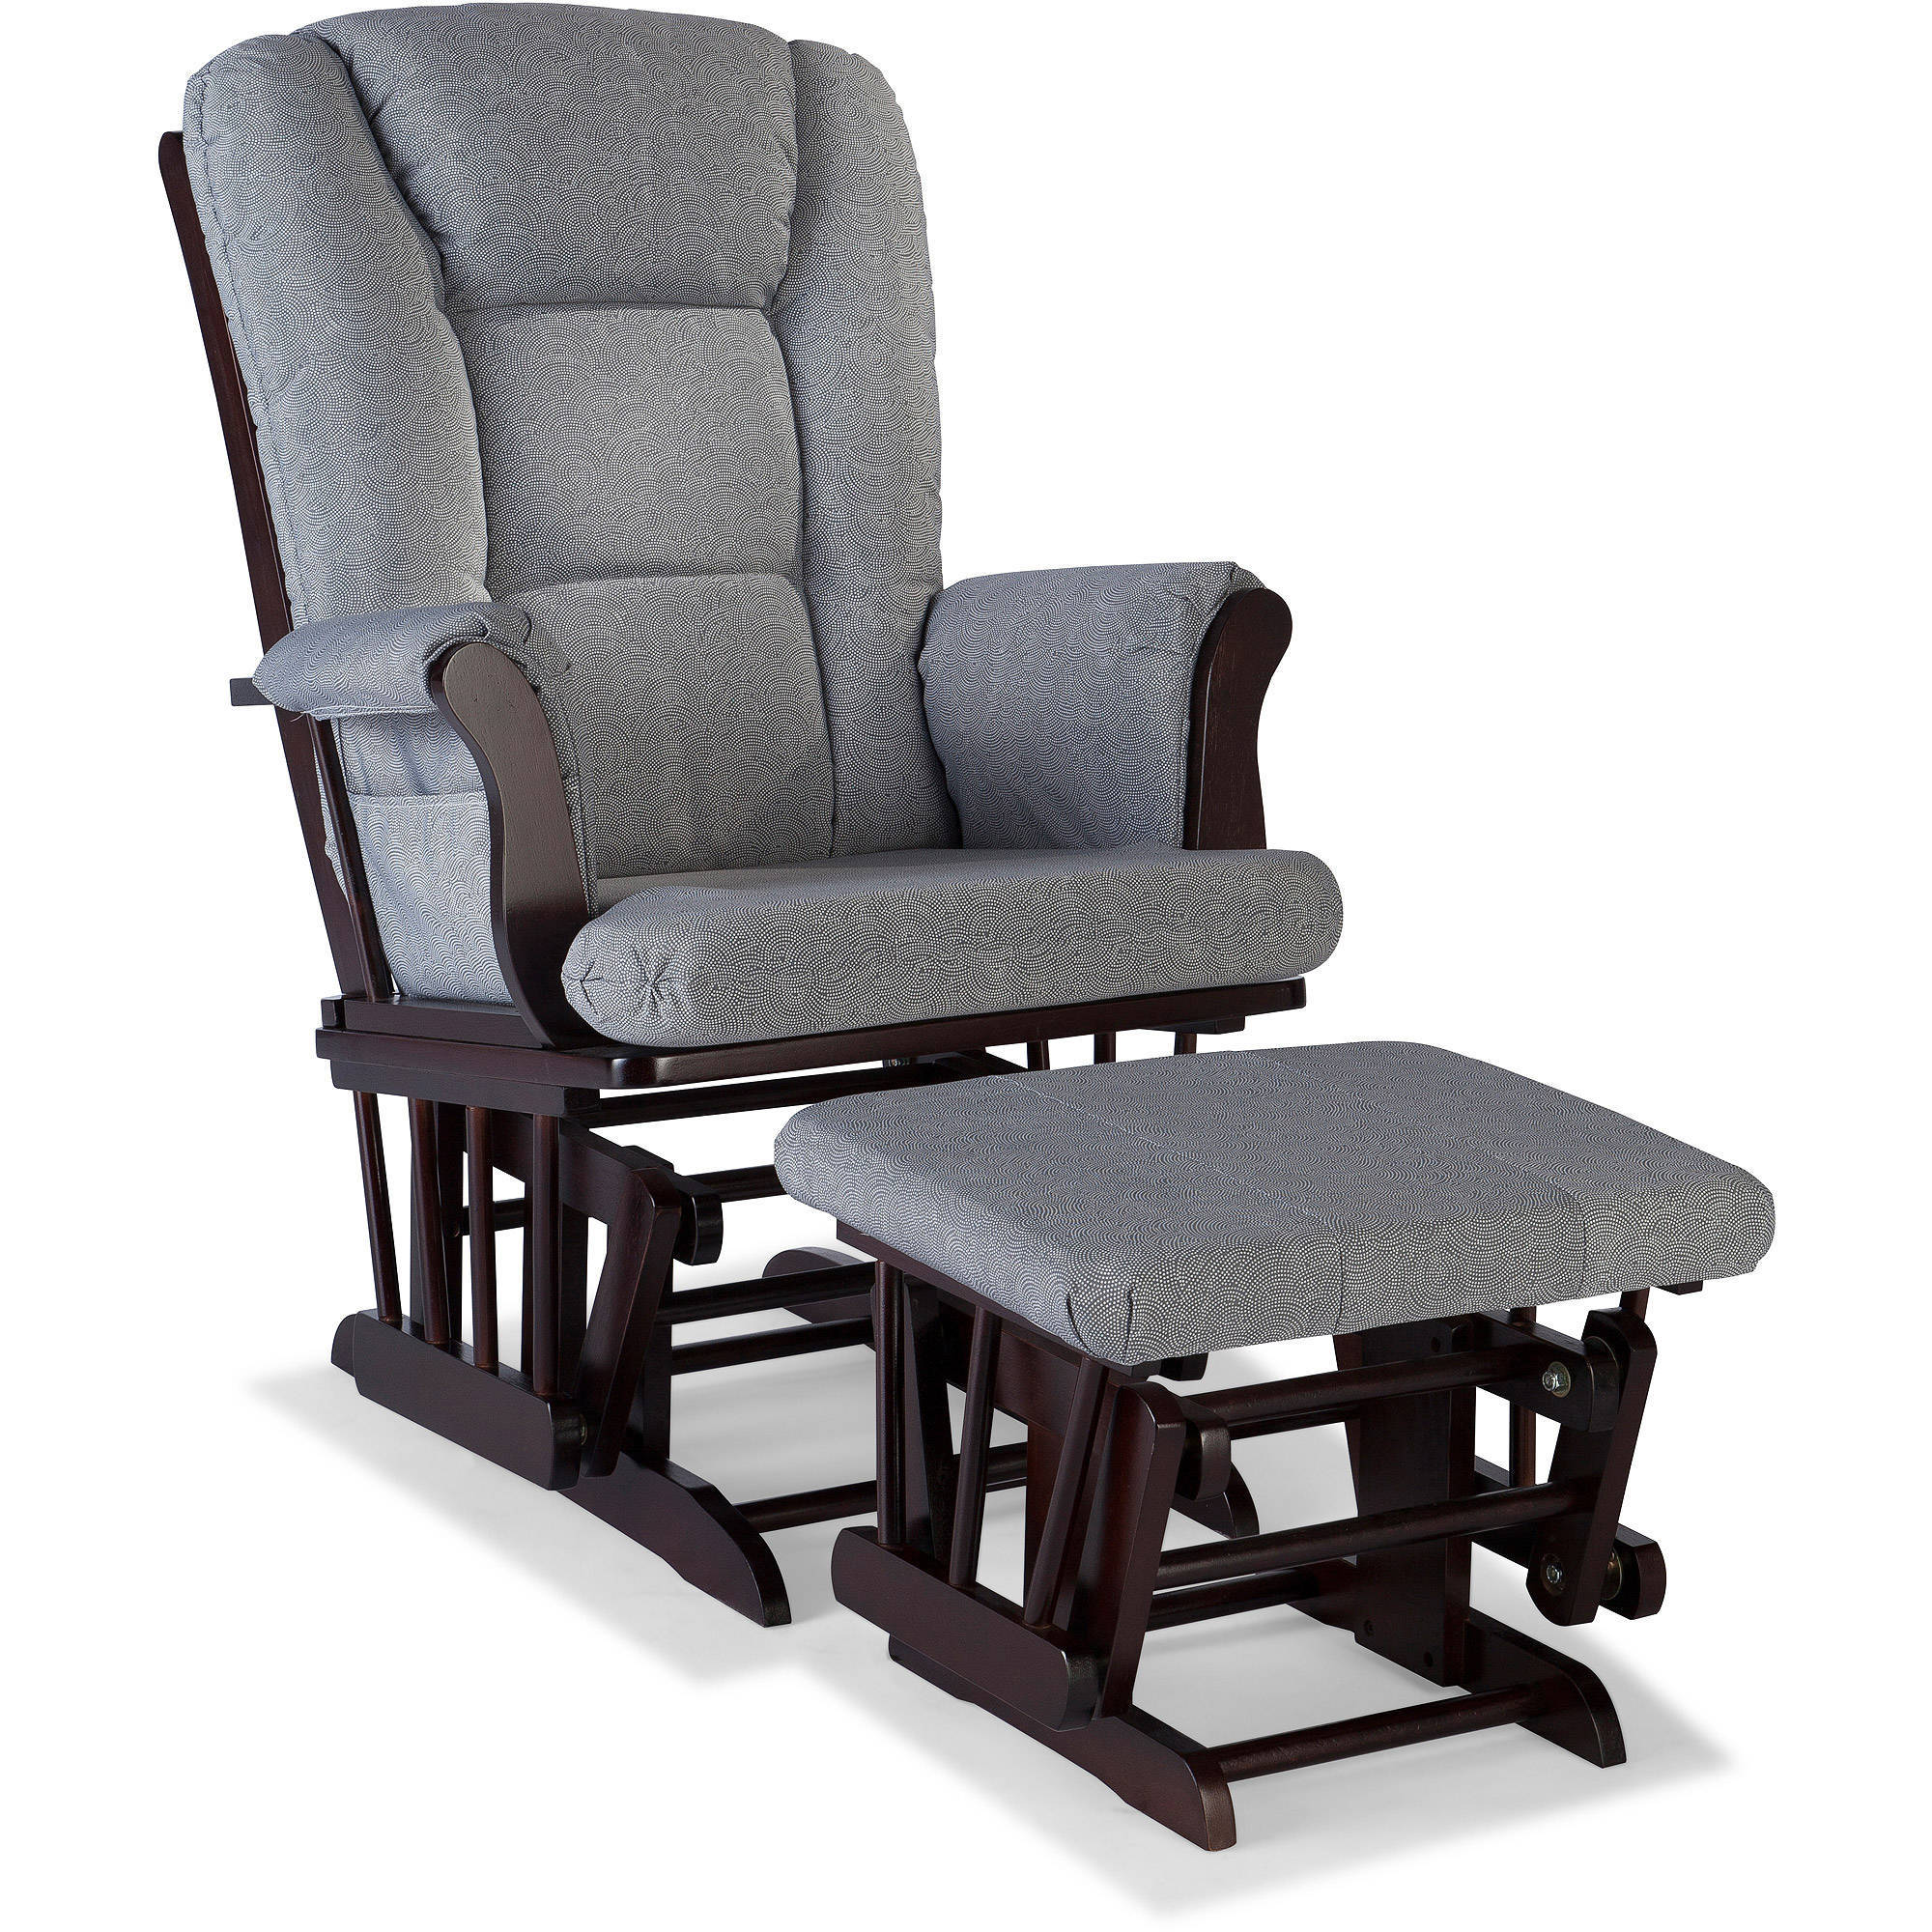 Storkcraft Swirl Tuscany Glider and Ottoman incl Lumbar Pillow, Slate Gray Cushions, Choose Your Cushion Color